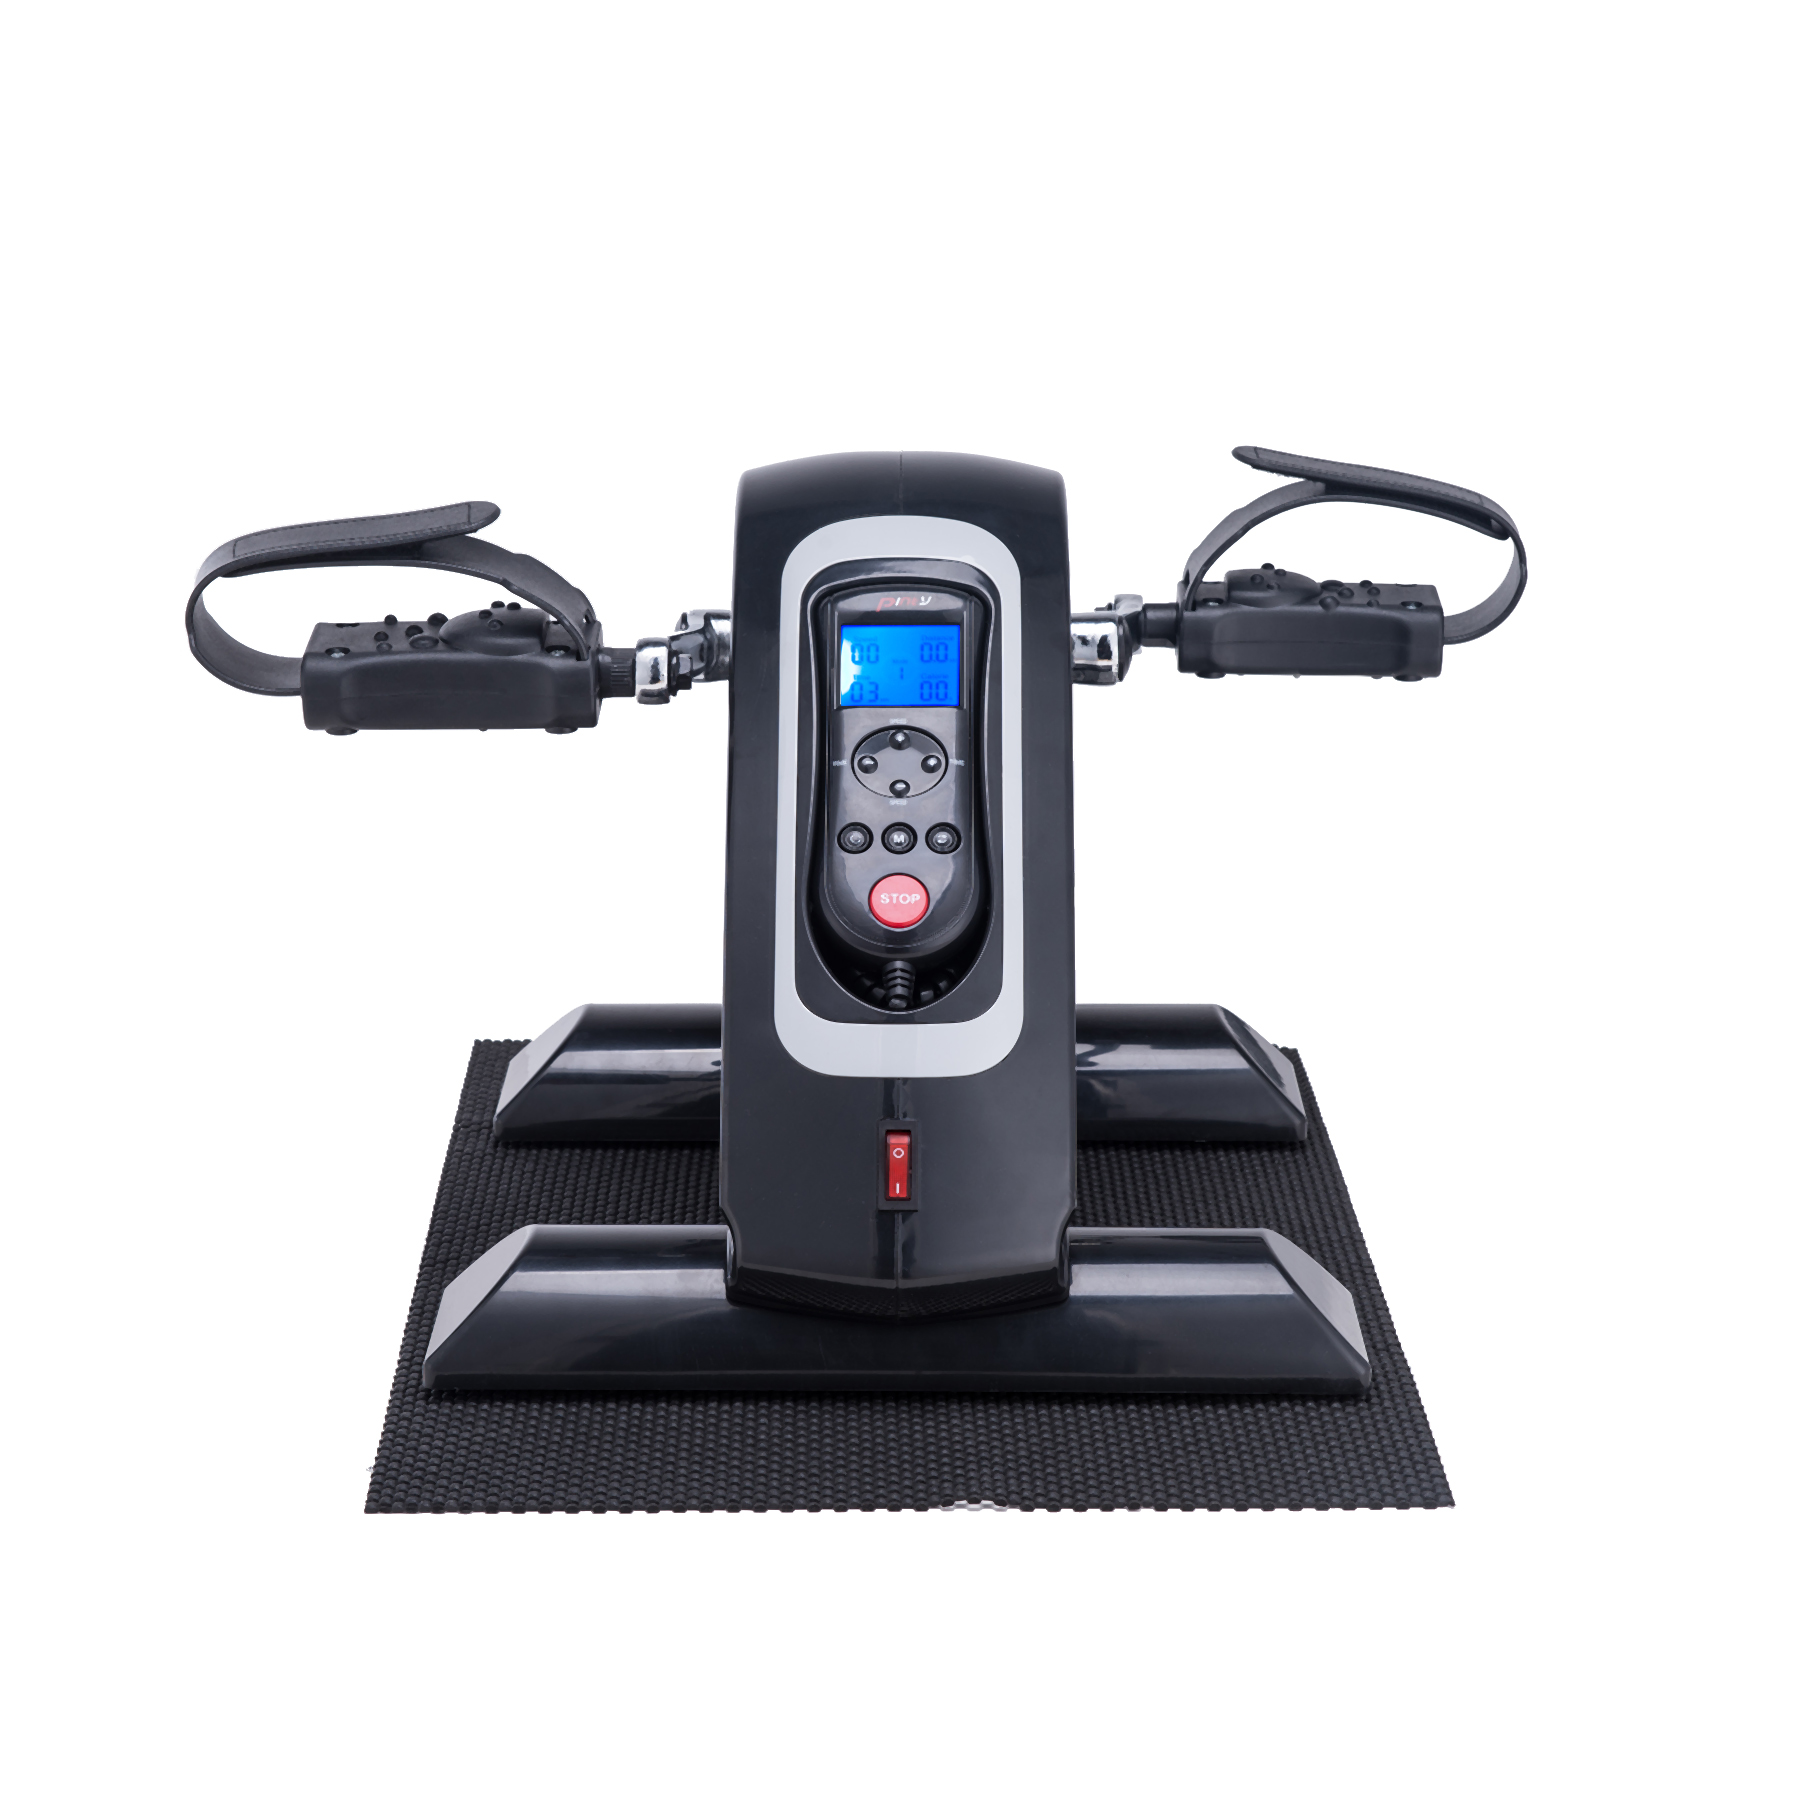 Rehab Bike Fitness Motorized Exerciser Physical Therapy for Handicapped Disabled